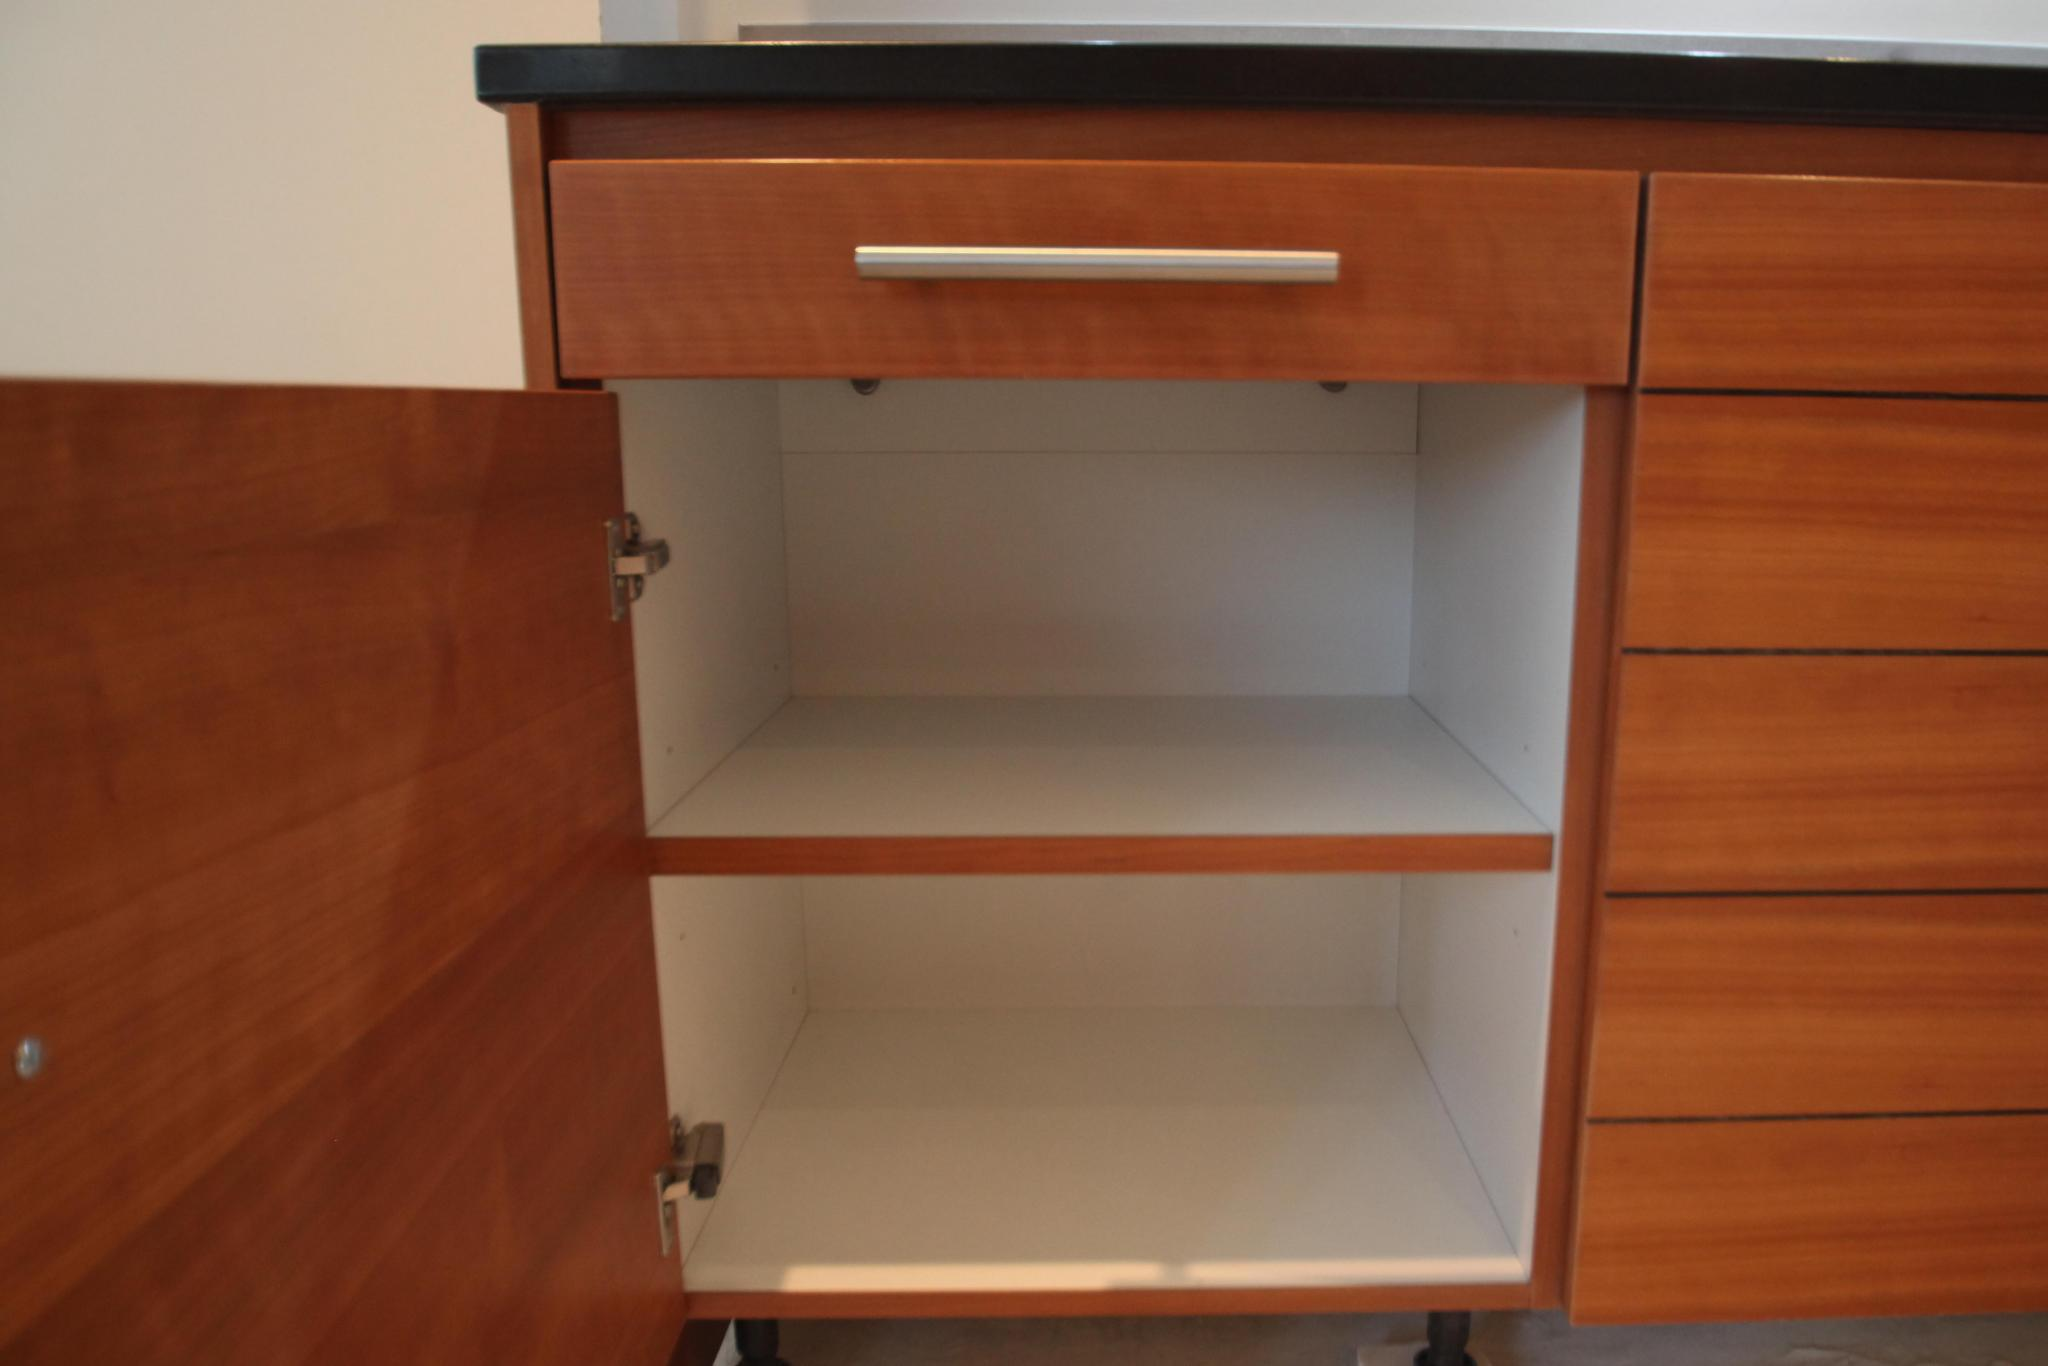 Large Contemporary Used Kitchen, Luxury Appliances: Miele